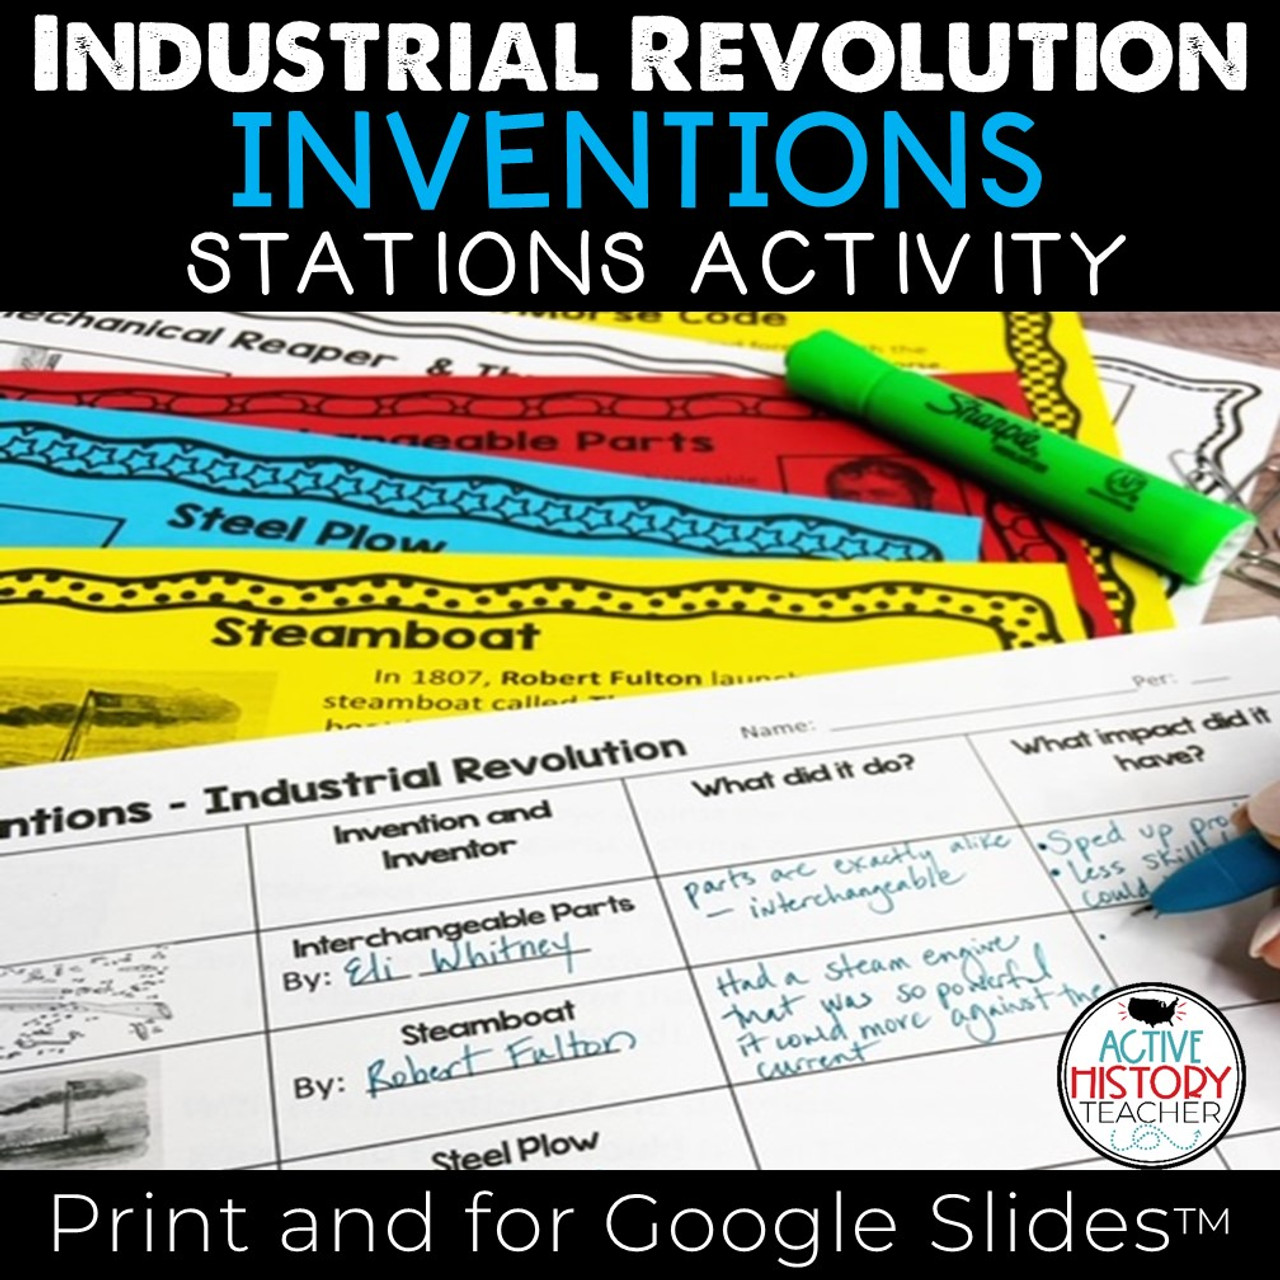 medium resolution of Industrial Revolution Inventions: Stations Activity - Amped Up Learning